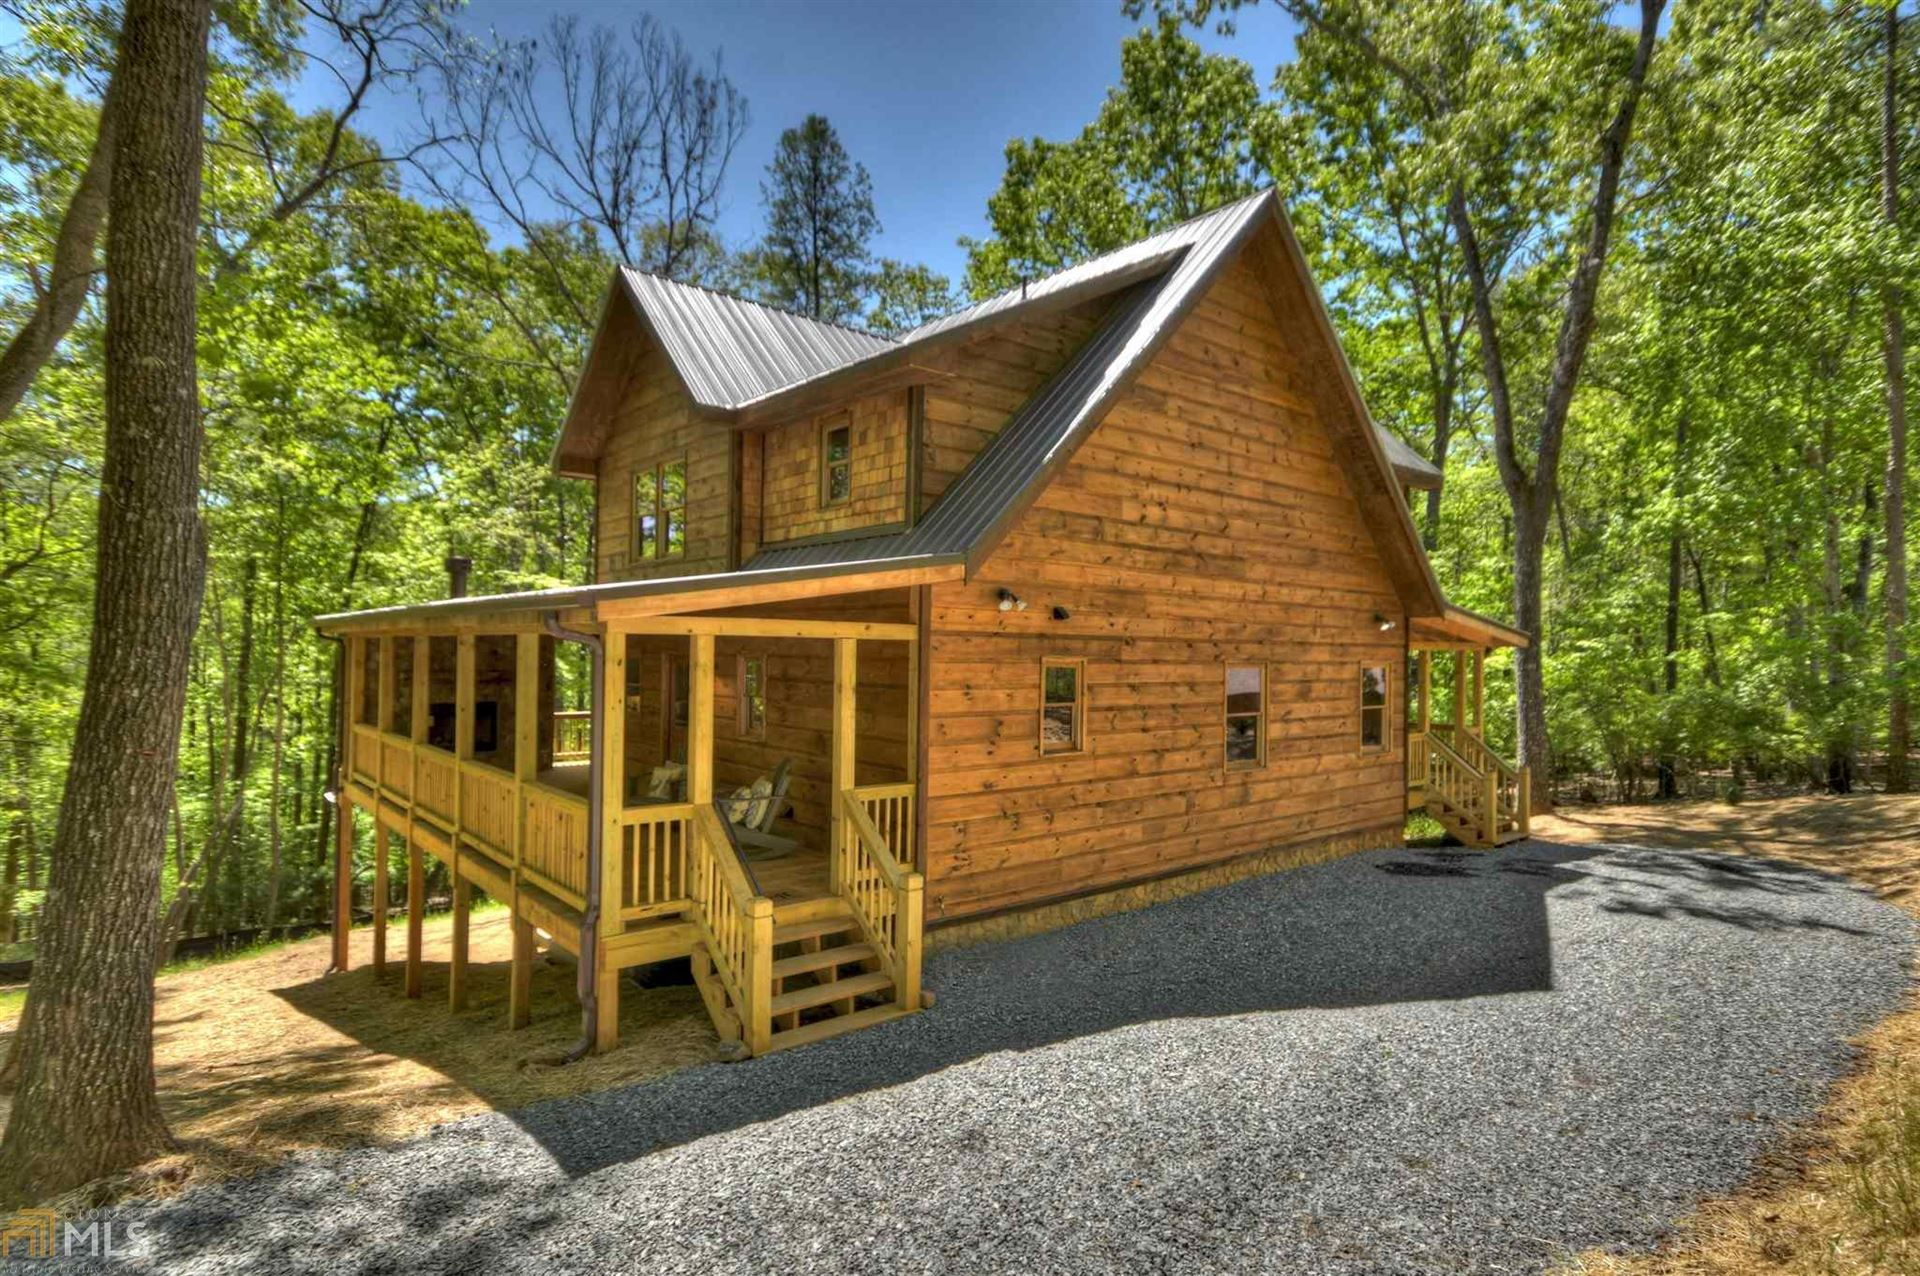 20 Crest Cir, Ellijay, GA 30540 - MLS#: 8883819